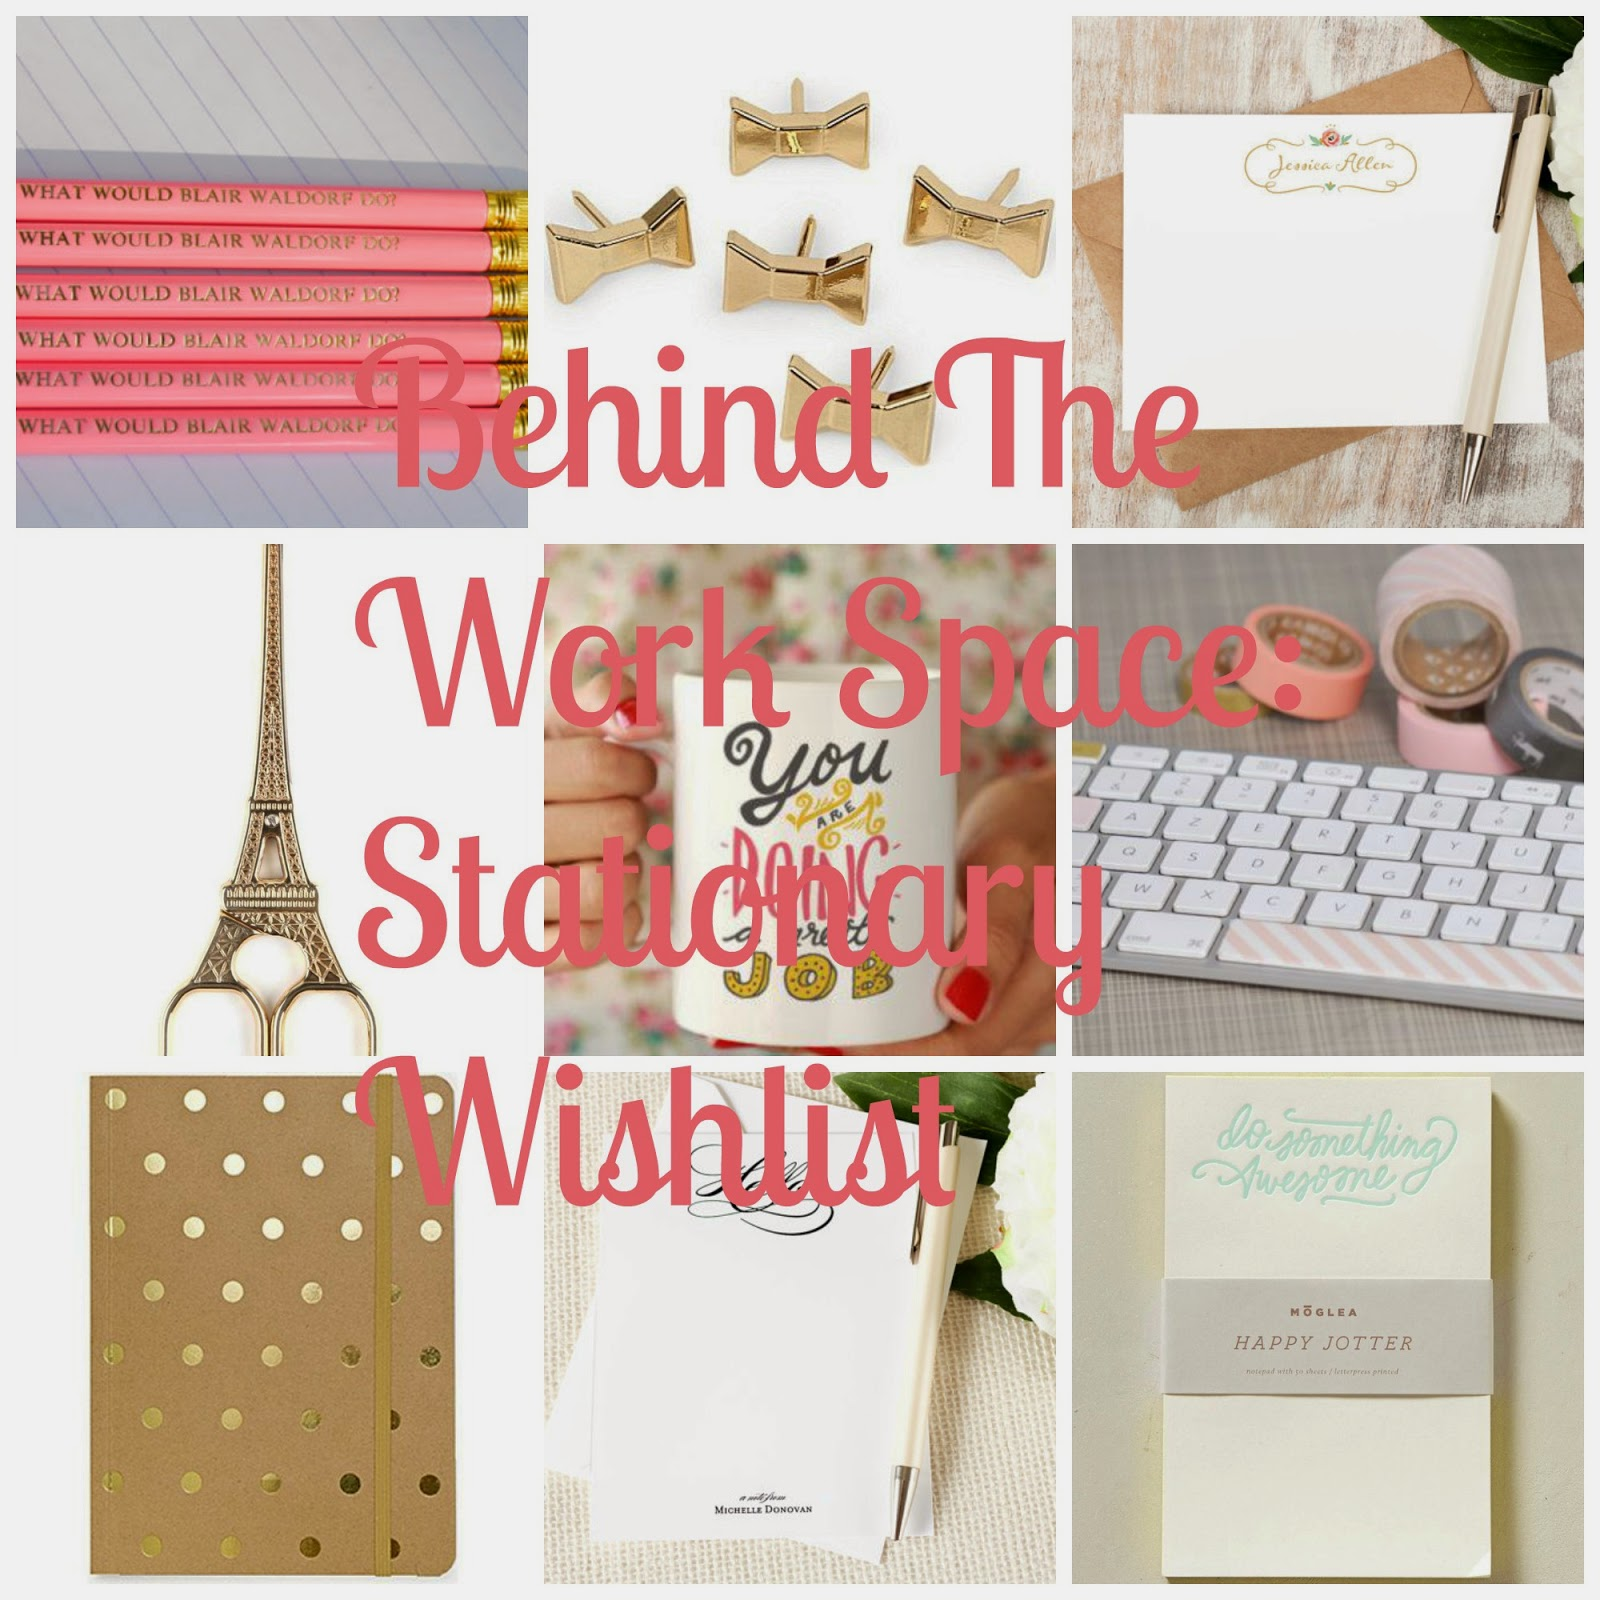 Behind The Work Space: Stationary Wishlist